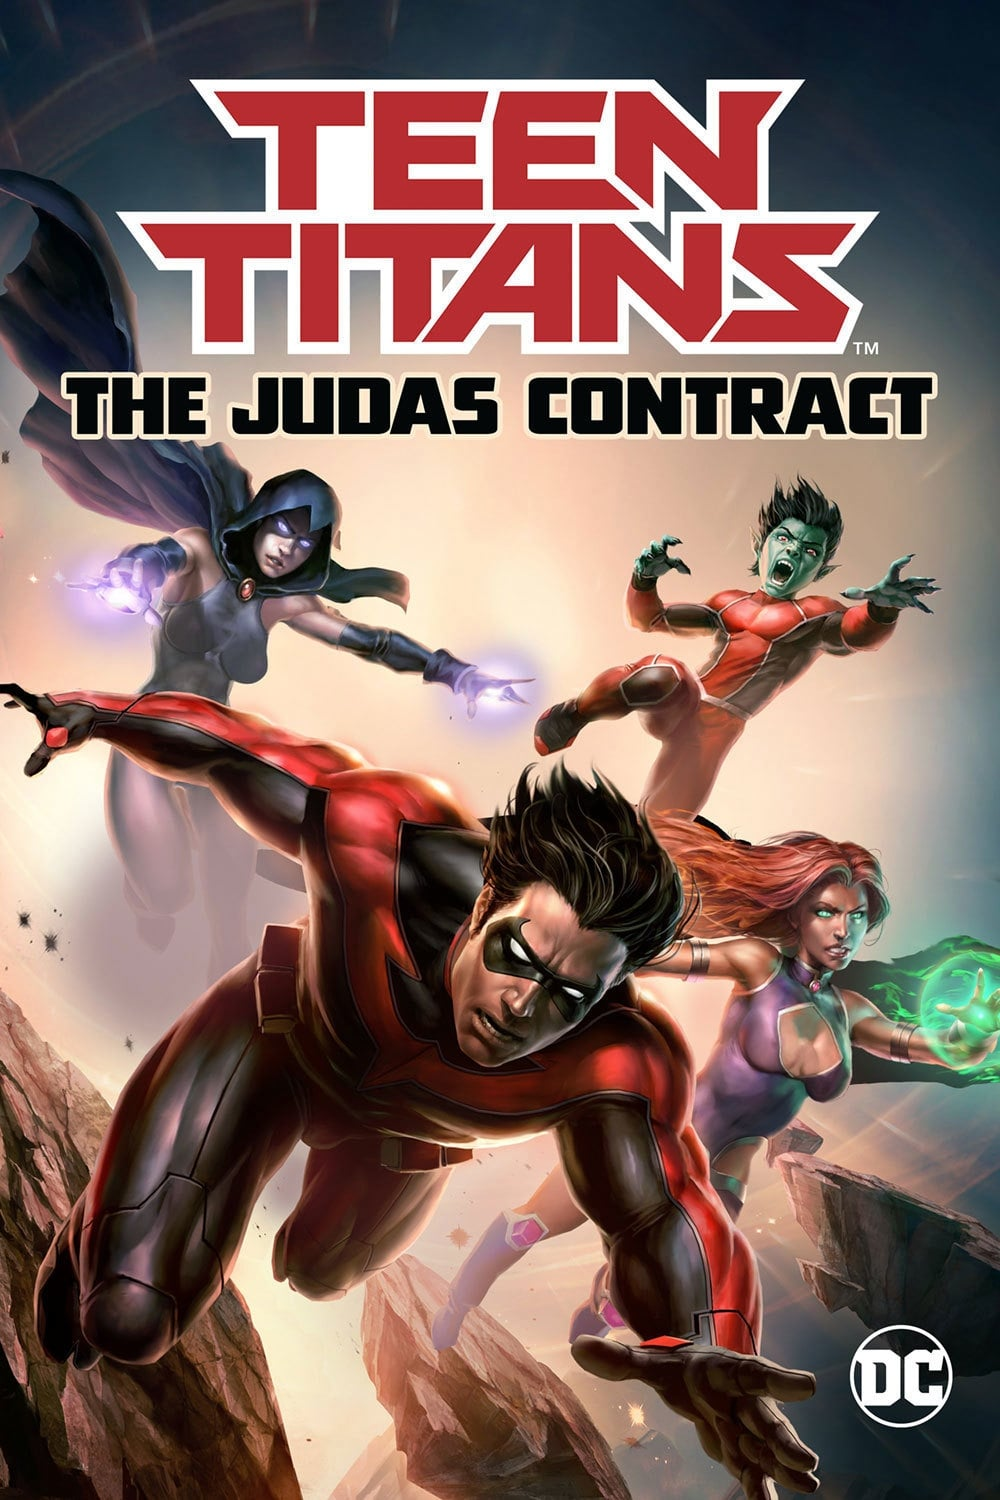 Teen Titans: The Judas Contract (2017)